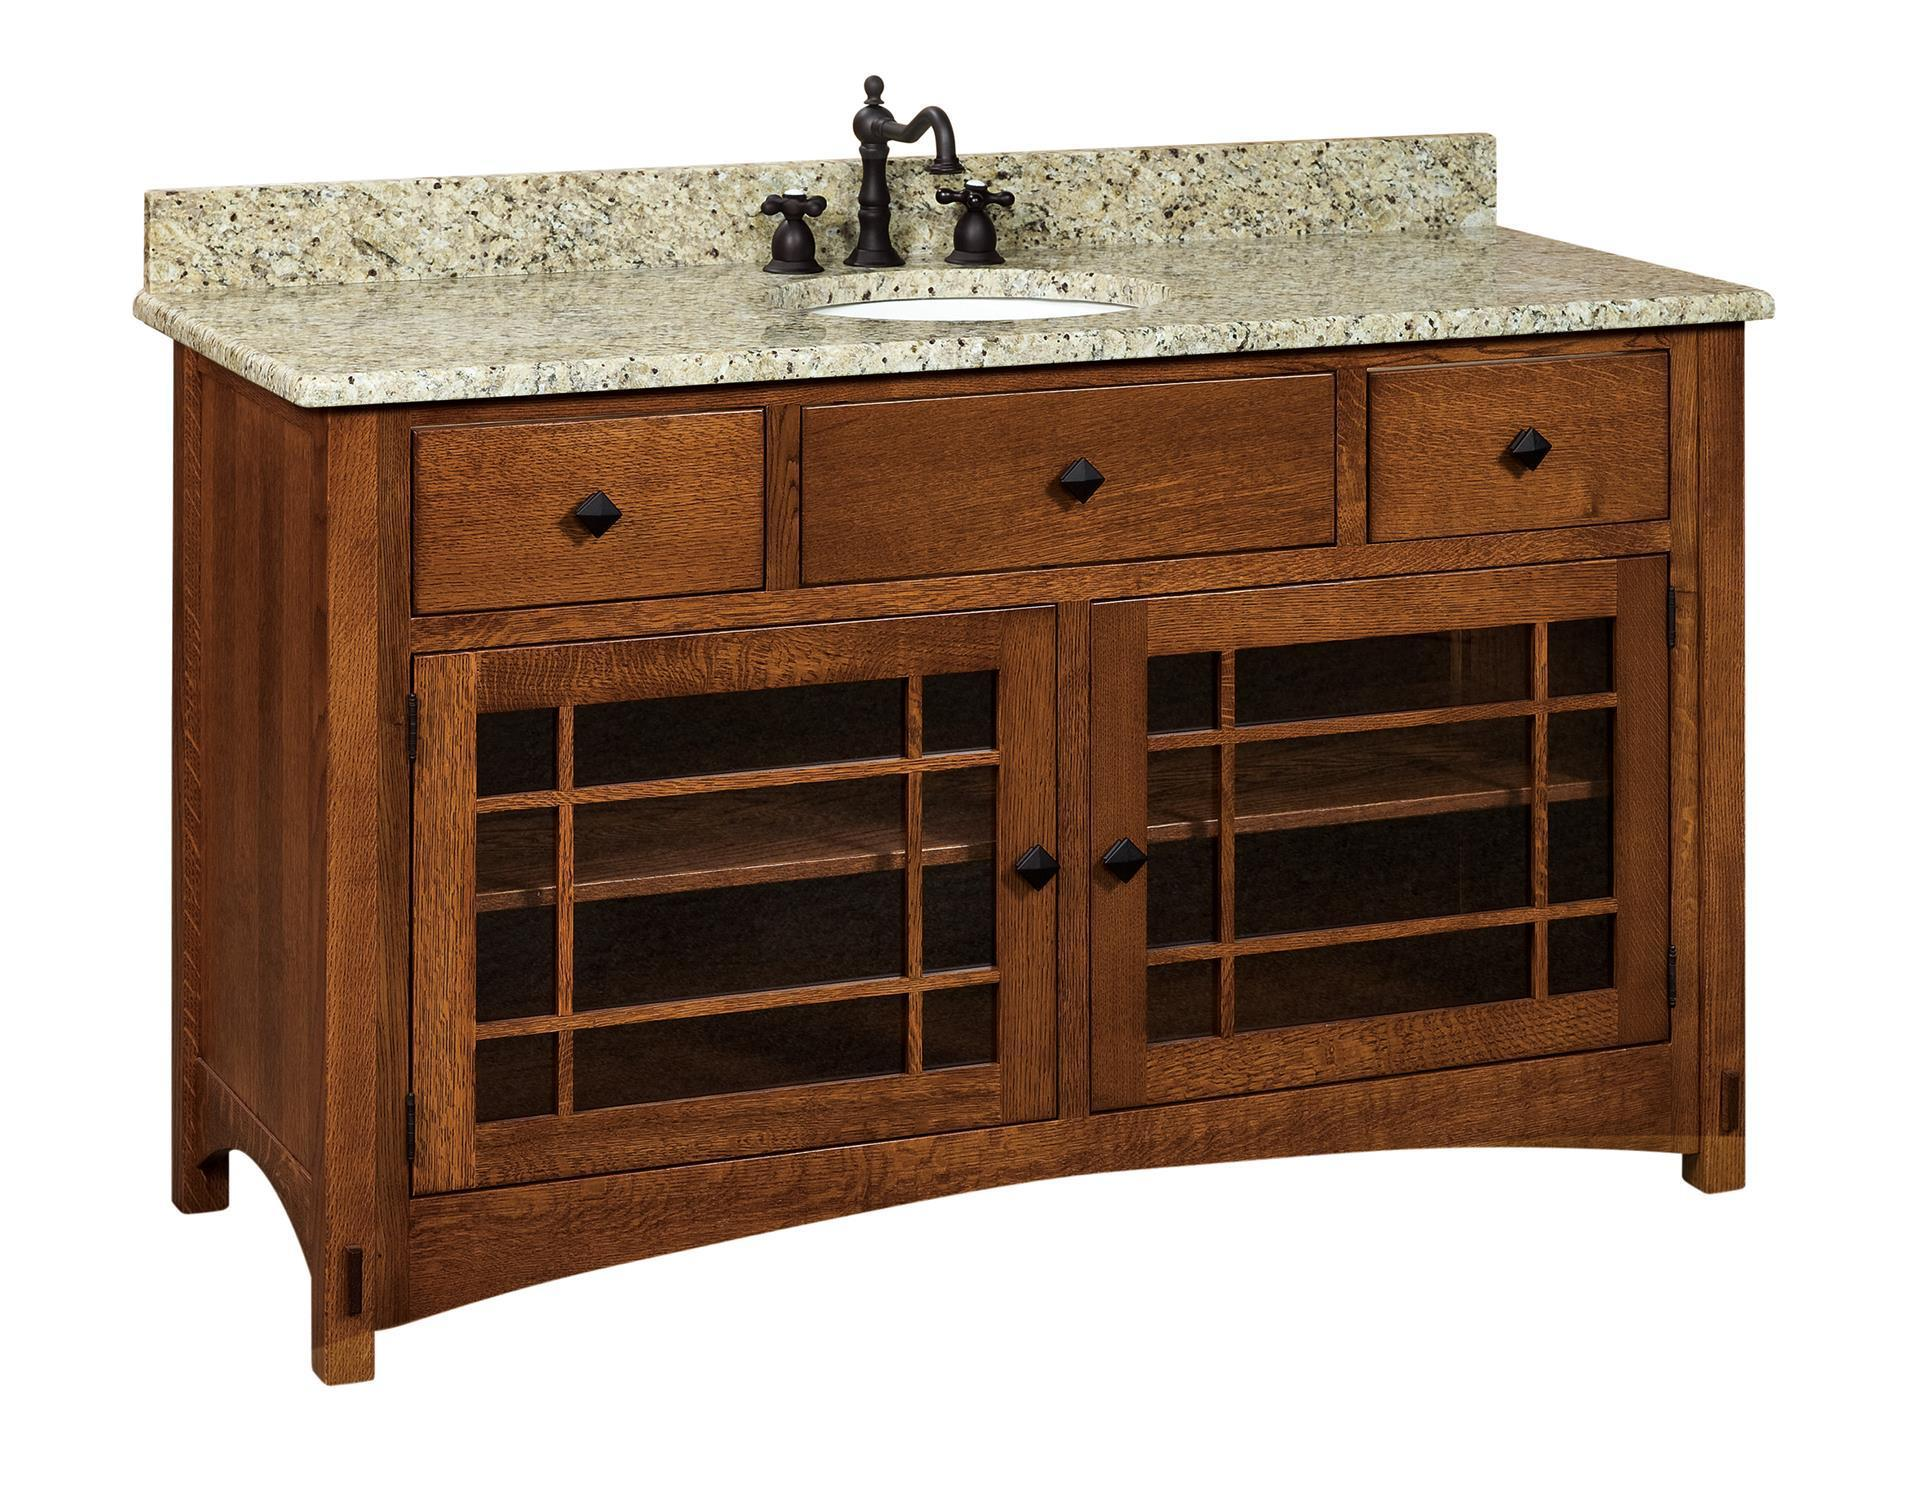 60 Quot Lucern Mission Single Bathroom Vanity Cabinet From